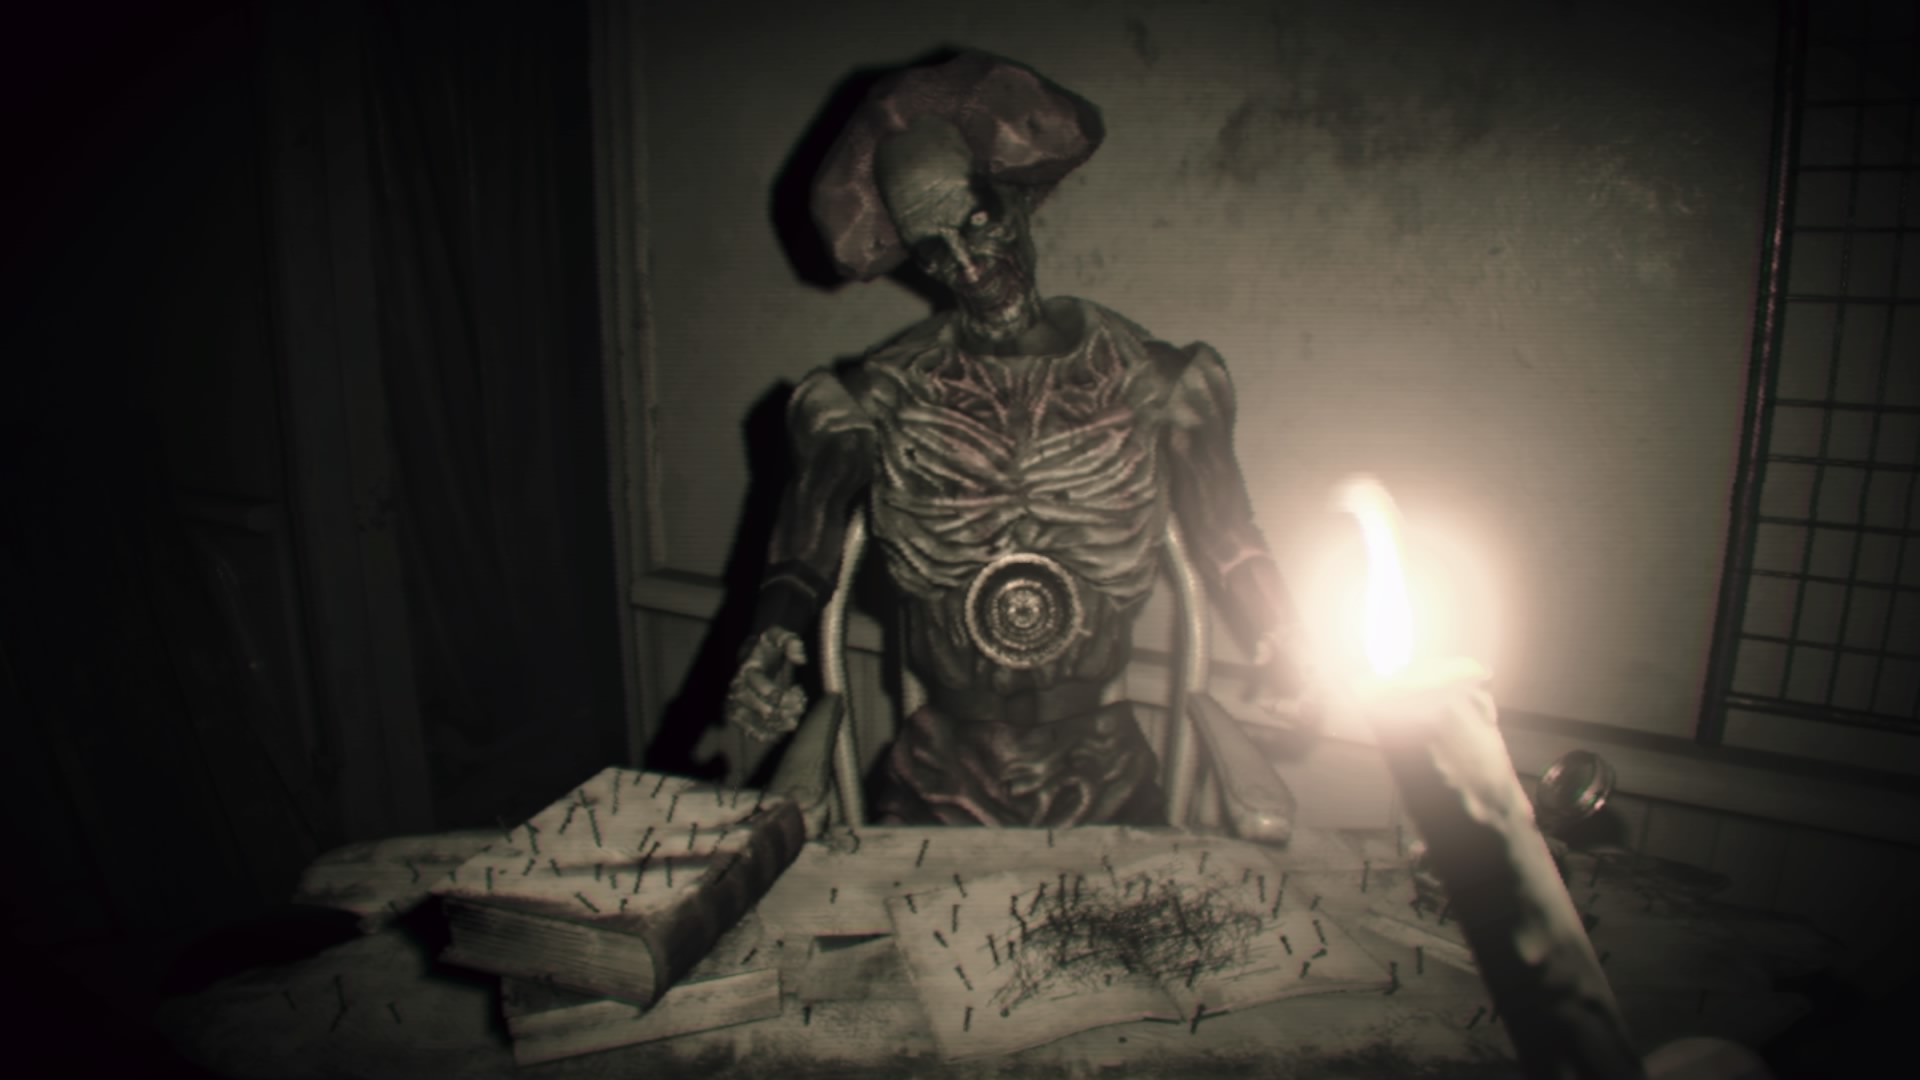 Resident Evil 7 guide and walkthrough 4-2 Happy birthday ...